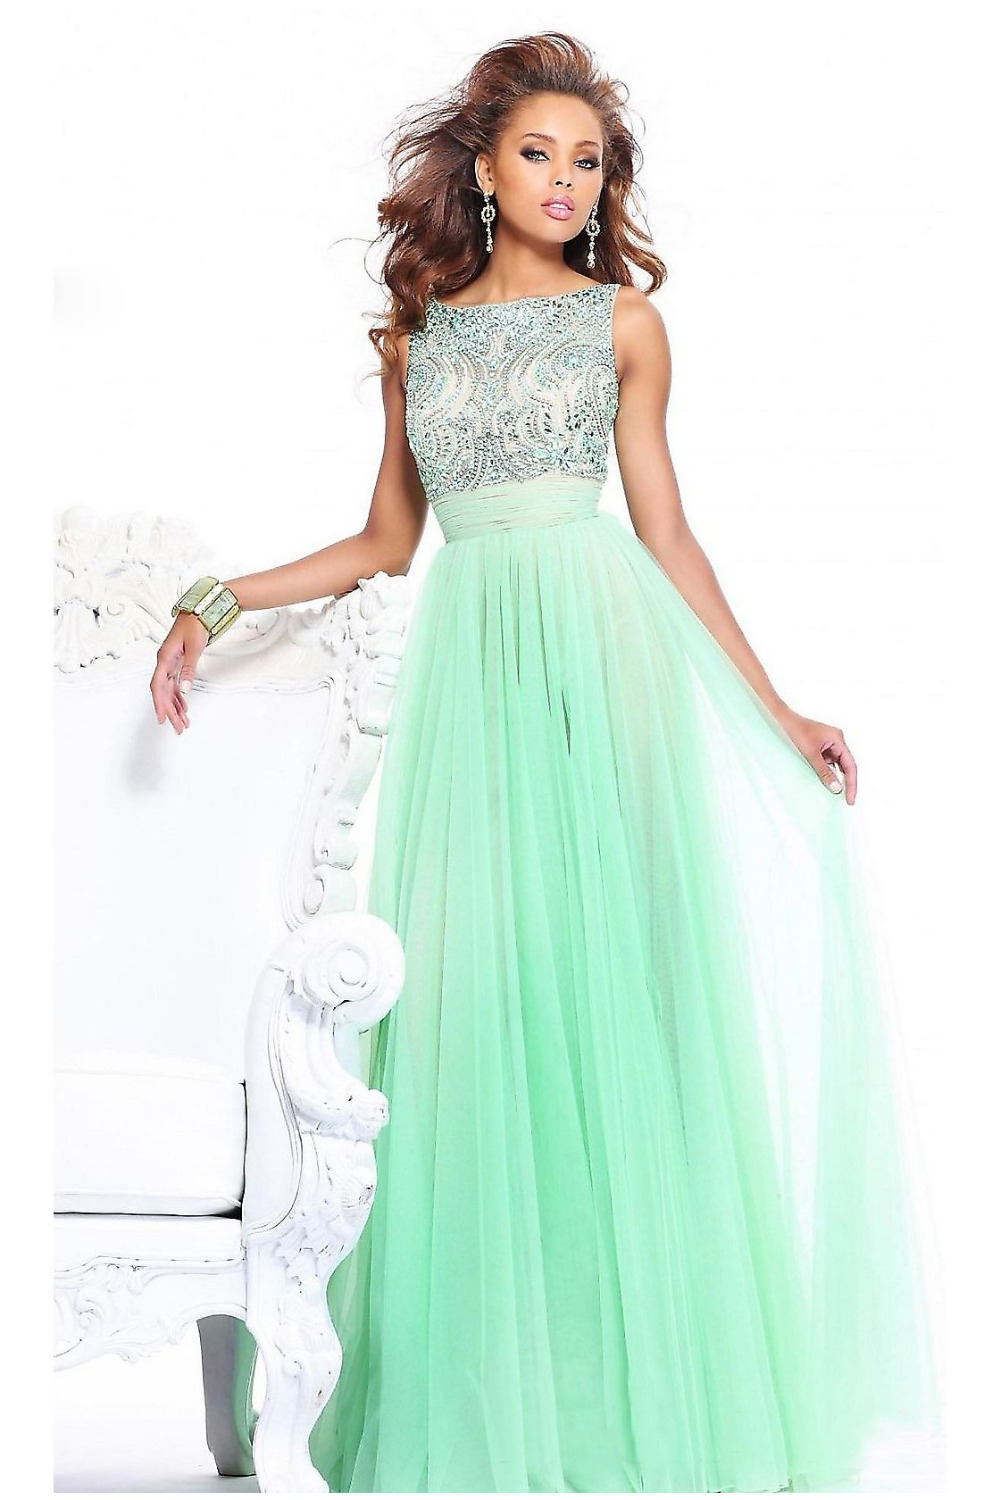 Compare Prices on Evening Dress Outlet- Online Shopping/Buy Low ...